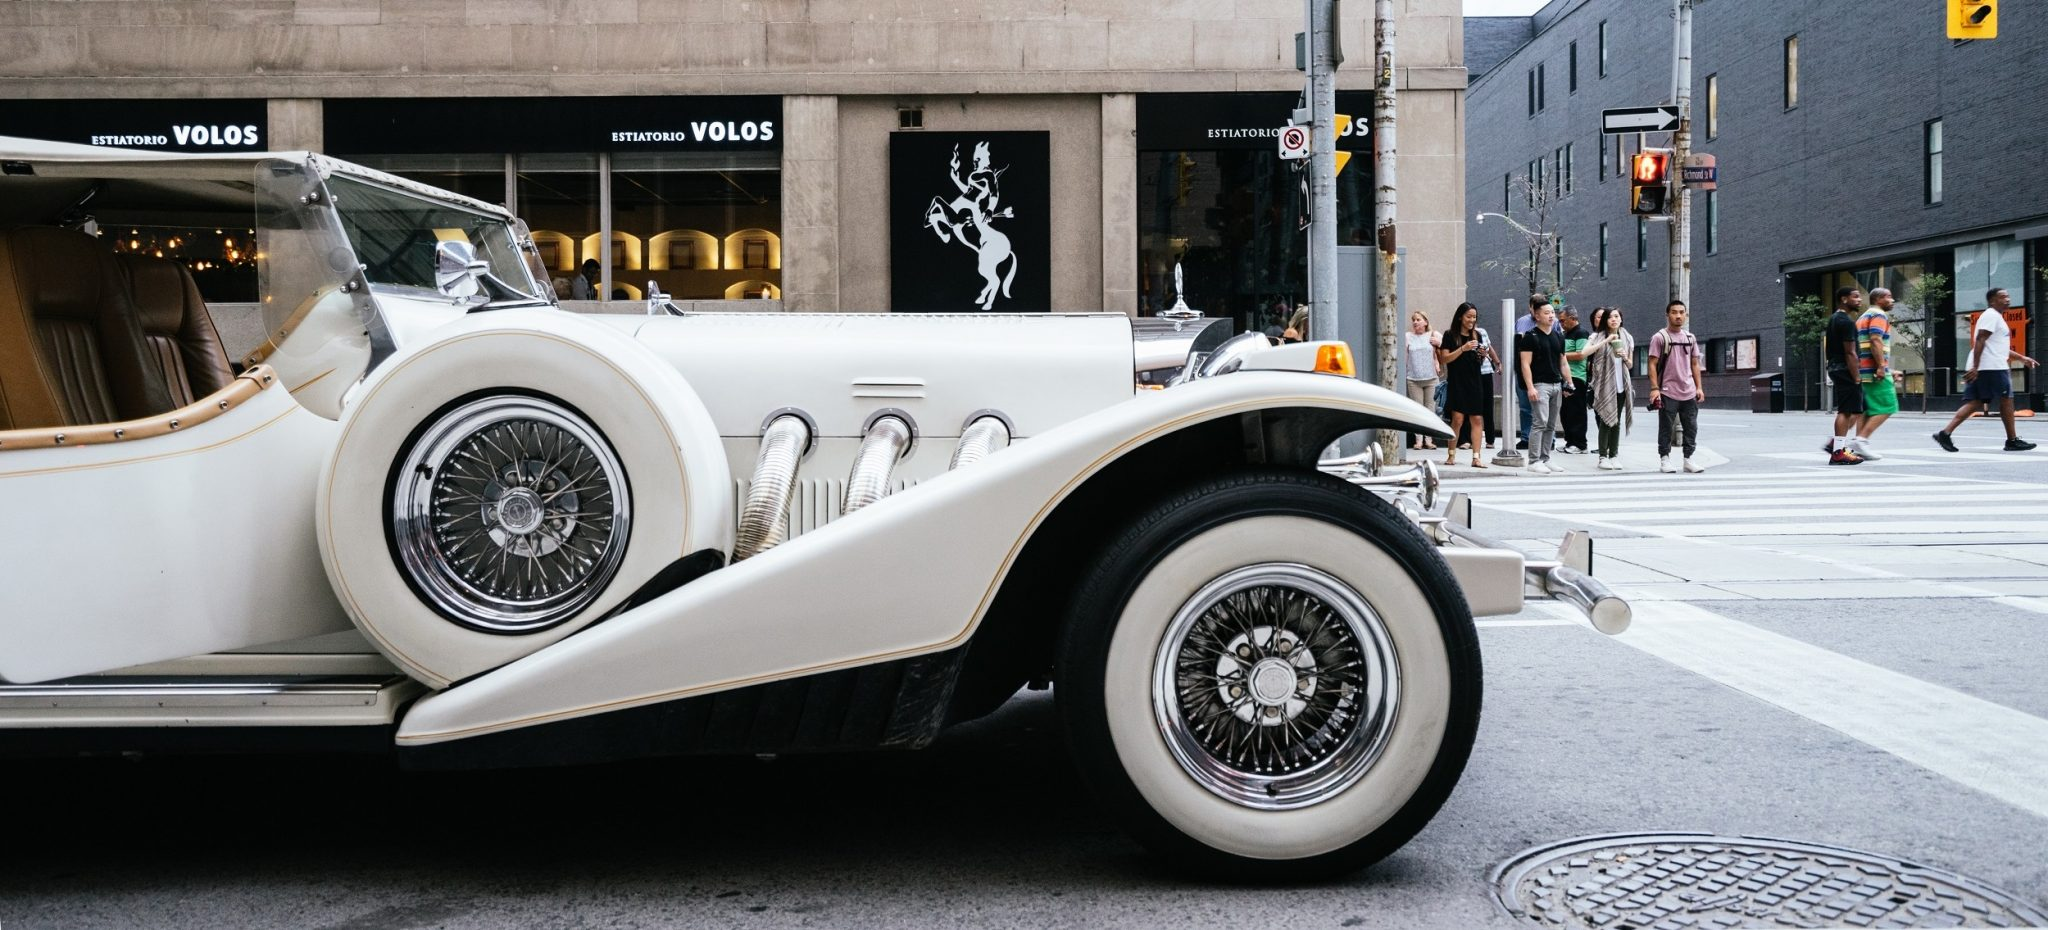 History, Hallmarks and Habits of Luxury Brands: the iconic markings of great luxury brands